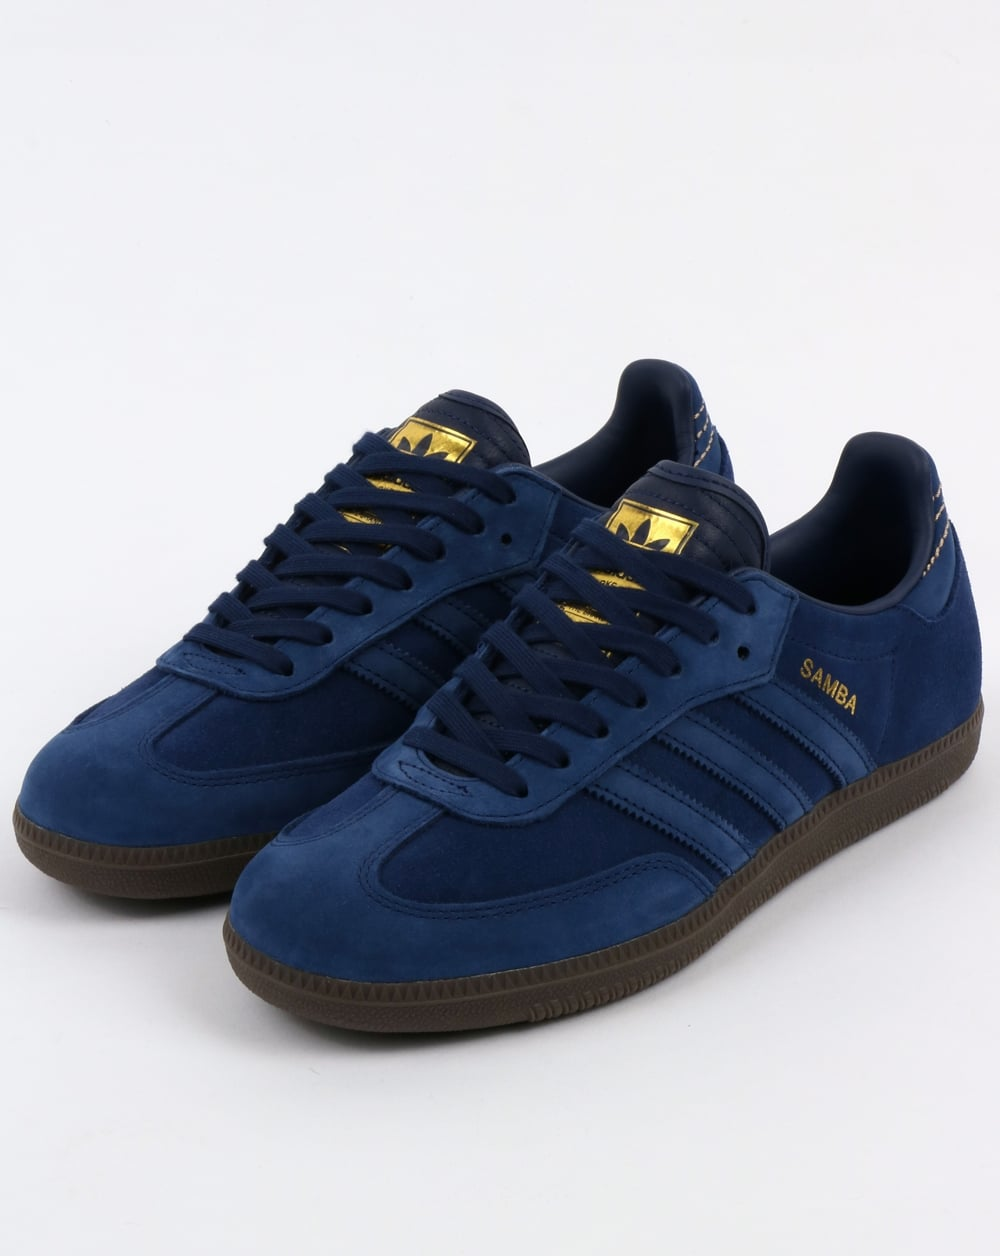 Adidas Samba Trainers Dark Blue,suede,OG,shoes,super,originals